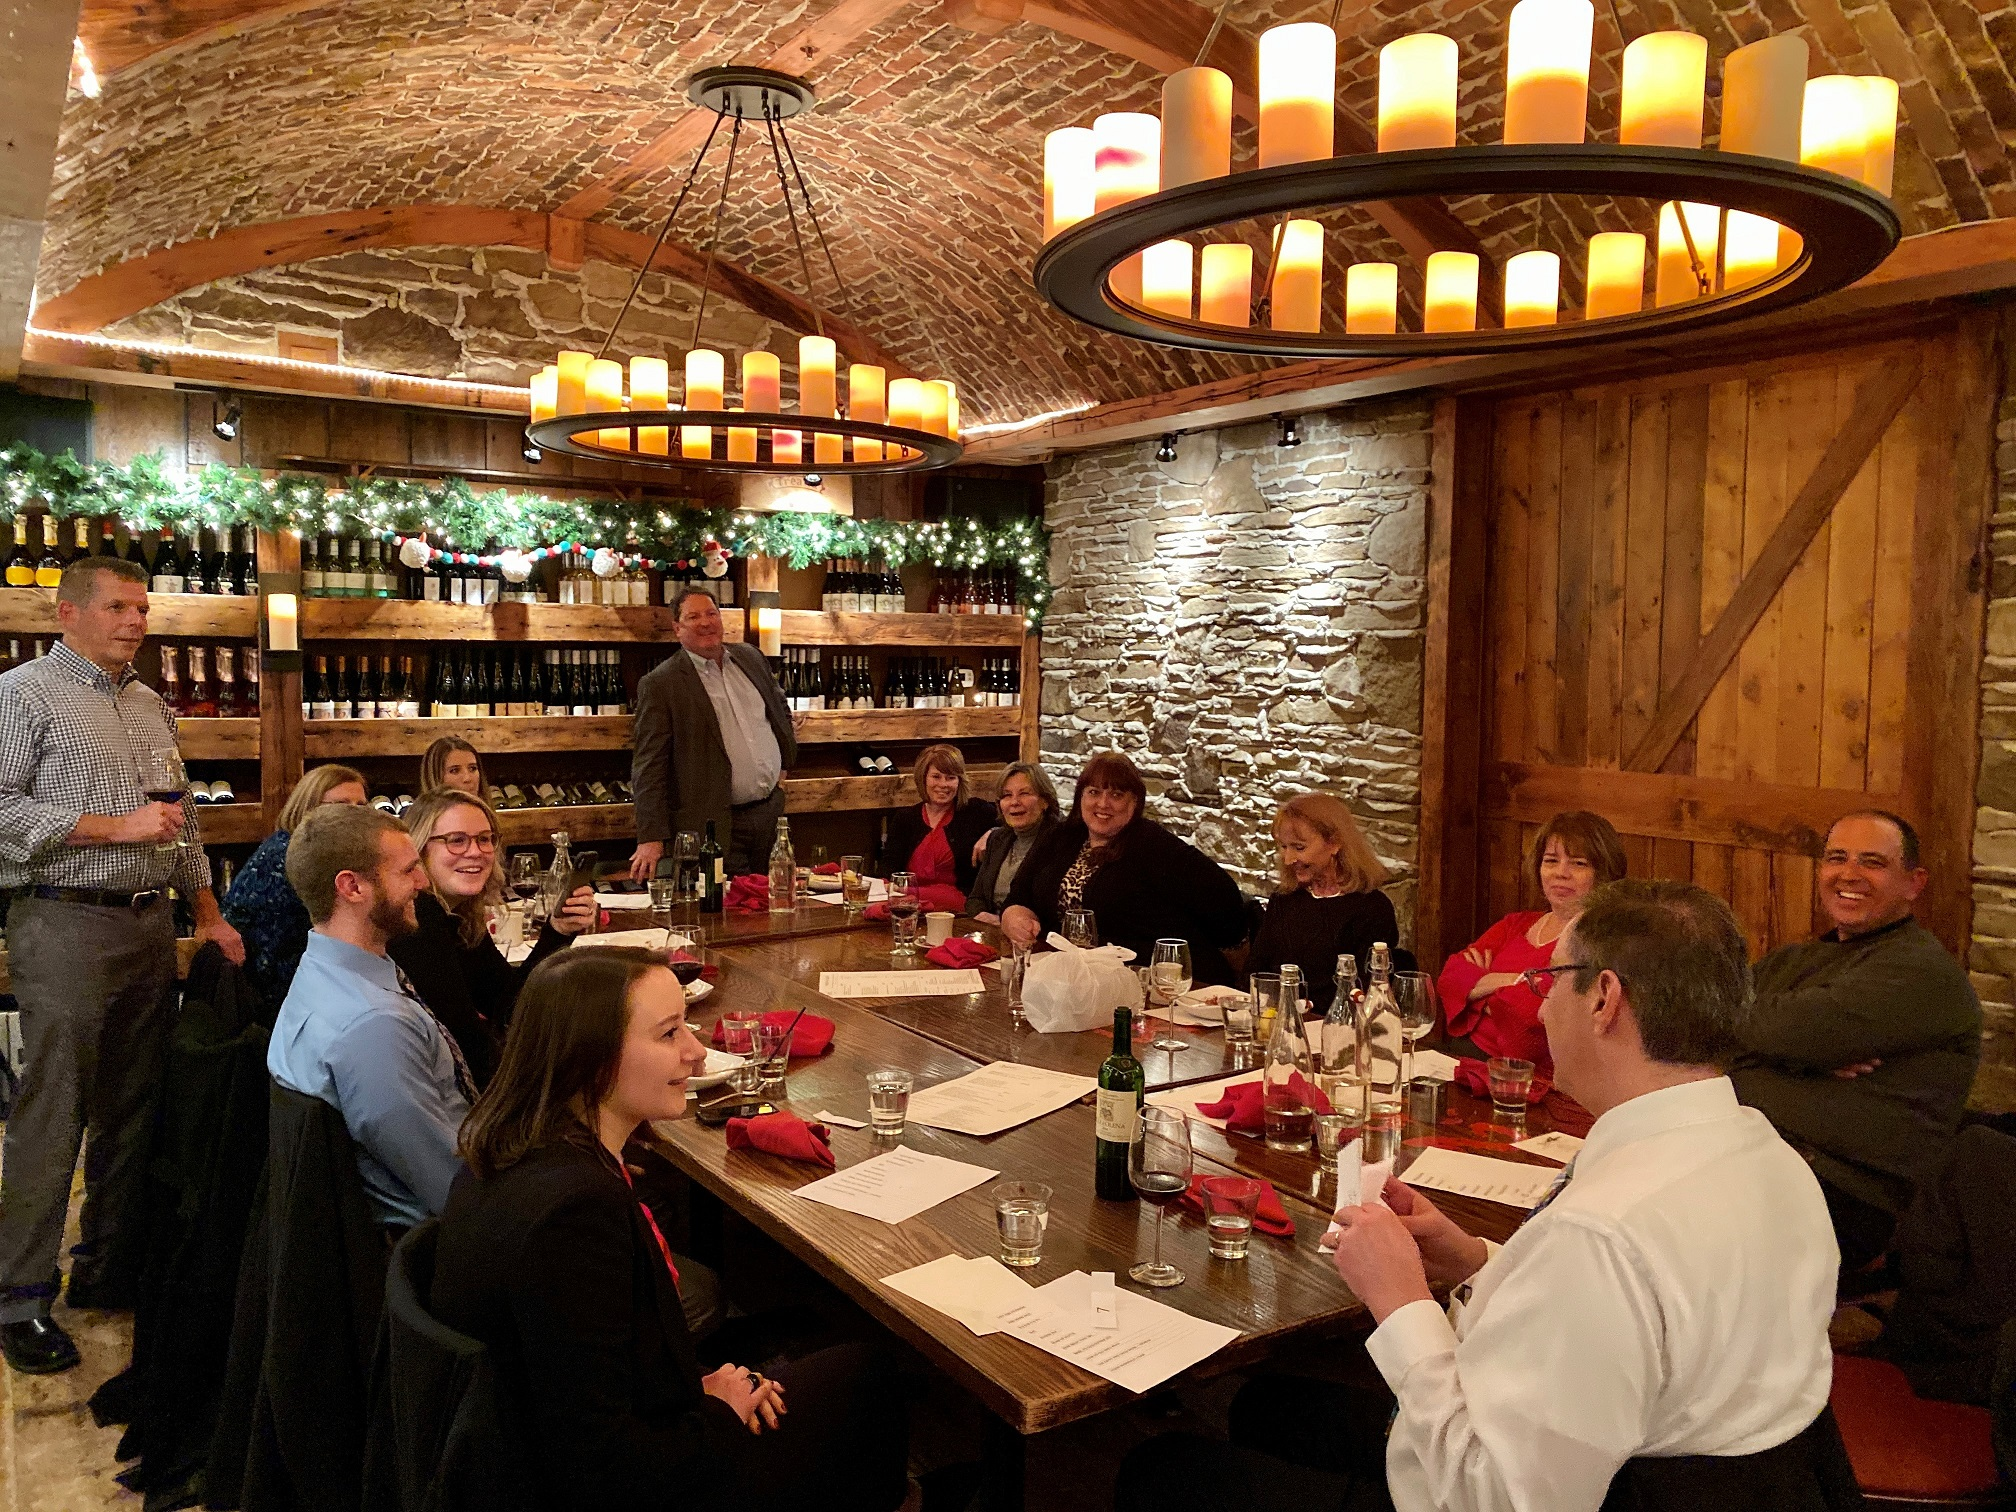 The whole IMC team had a great time celebrating its 2019 Holiday Party at Davanti Enoteca!